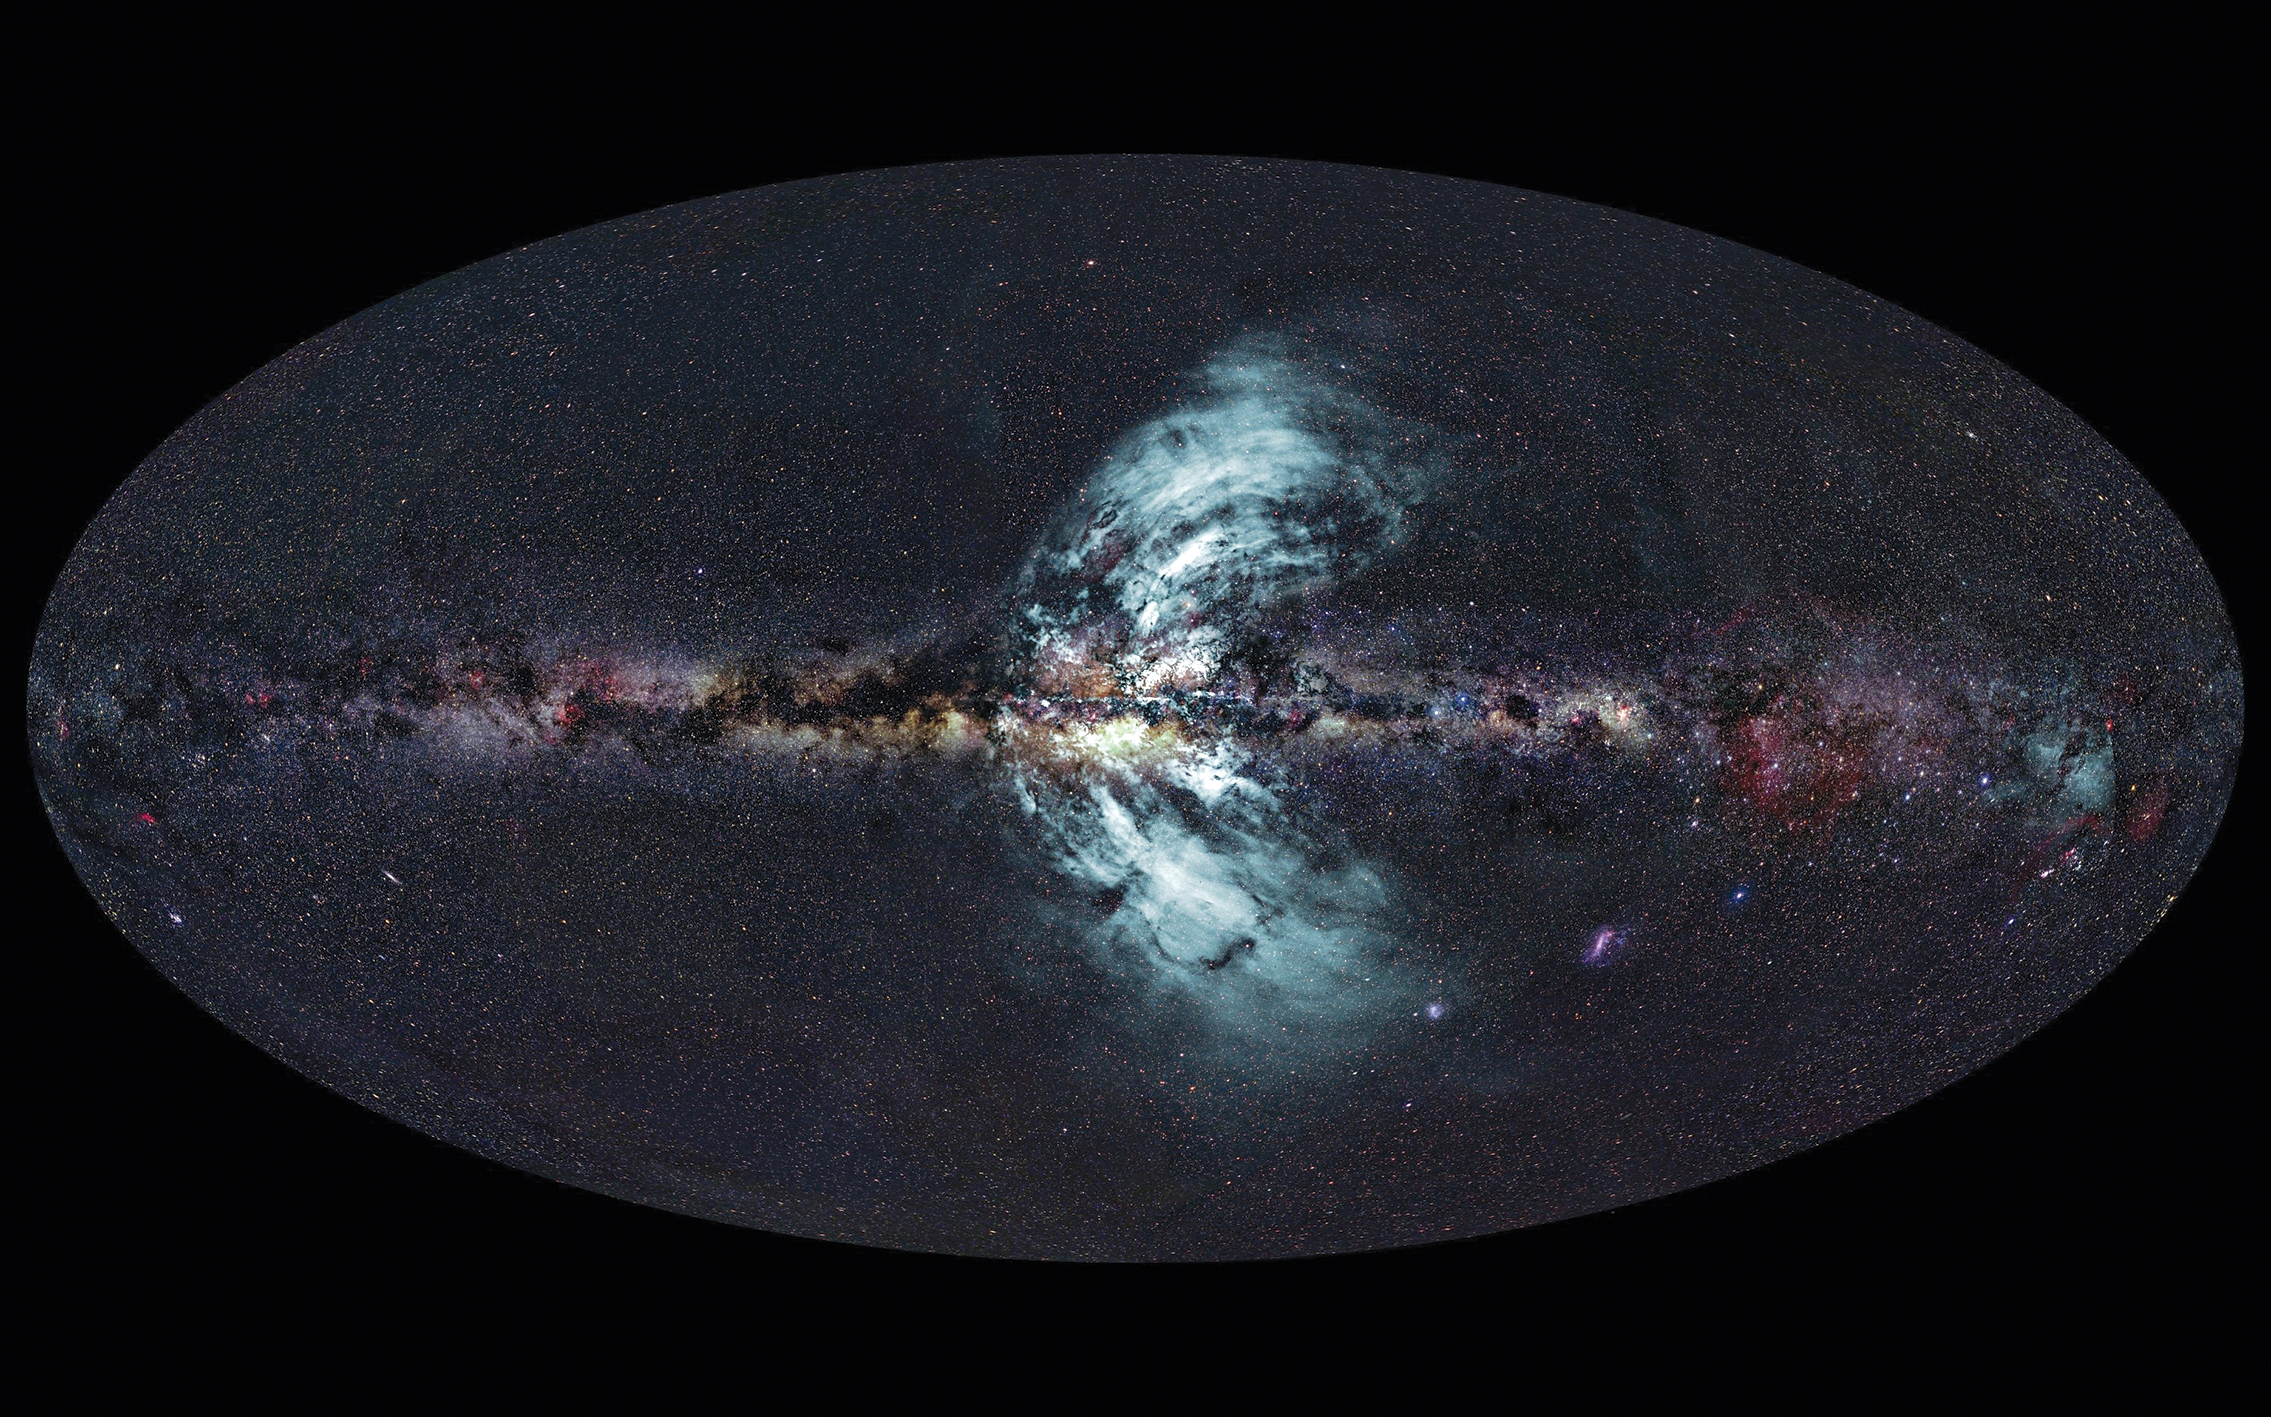 Milky Way composite showing the Galactic Centre.